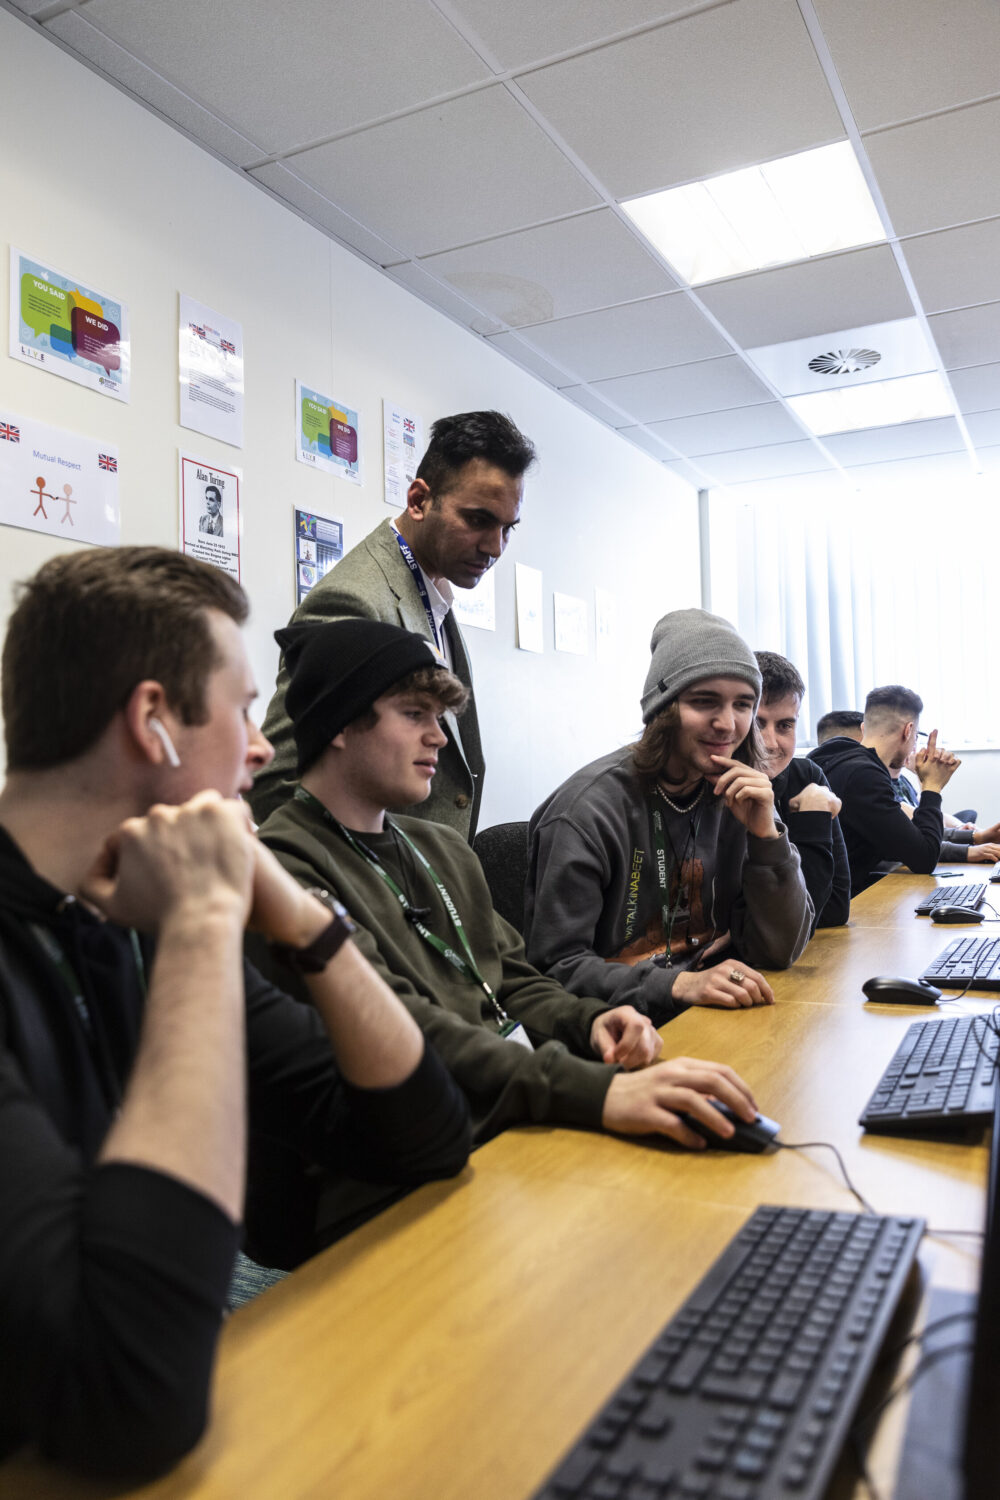 Higher Education Computing students Bedford College